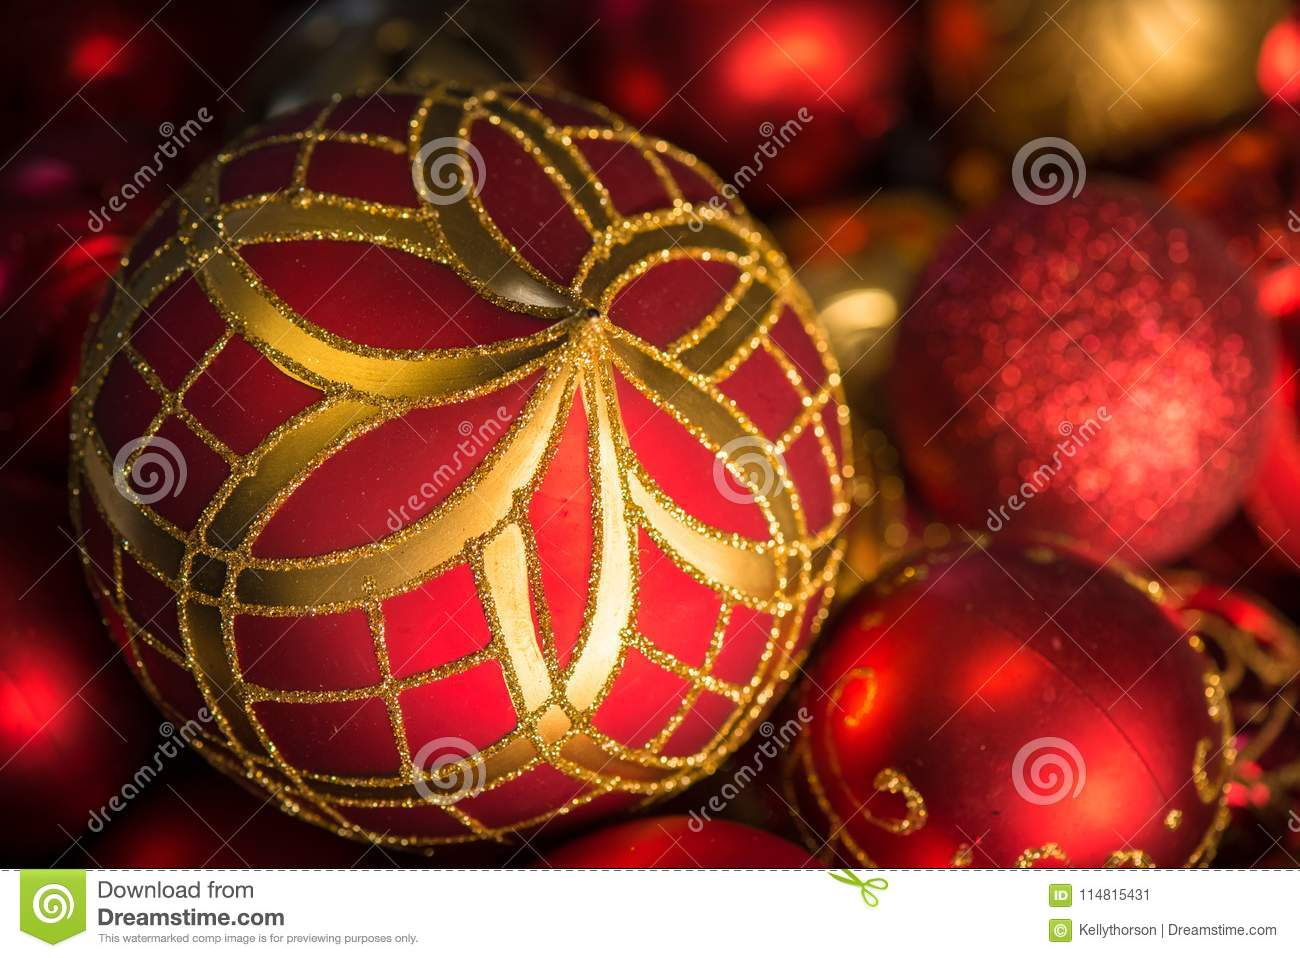 Fancy Red And Gold Christmas Tree Ornaments Stock Image Image Of Glitter Seasonal 114815431